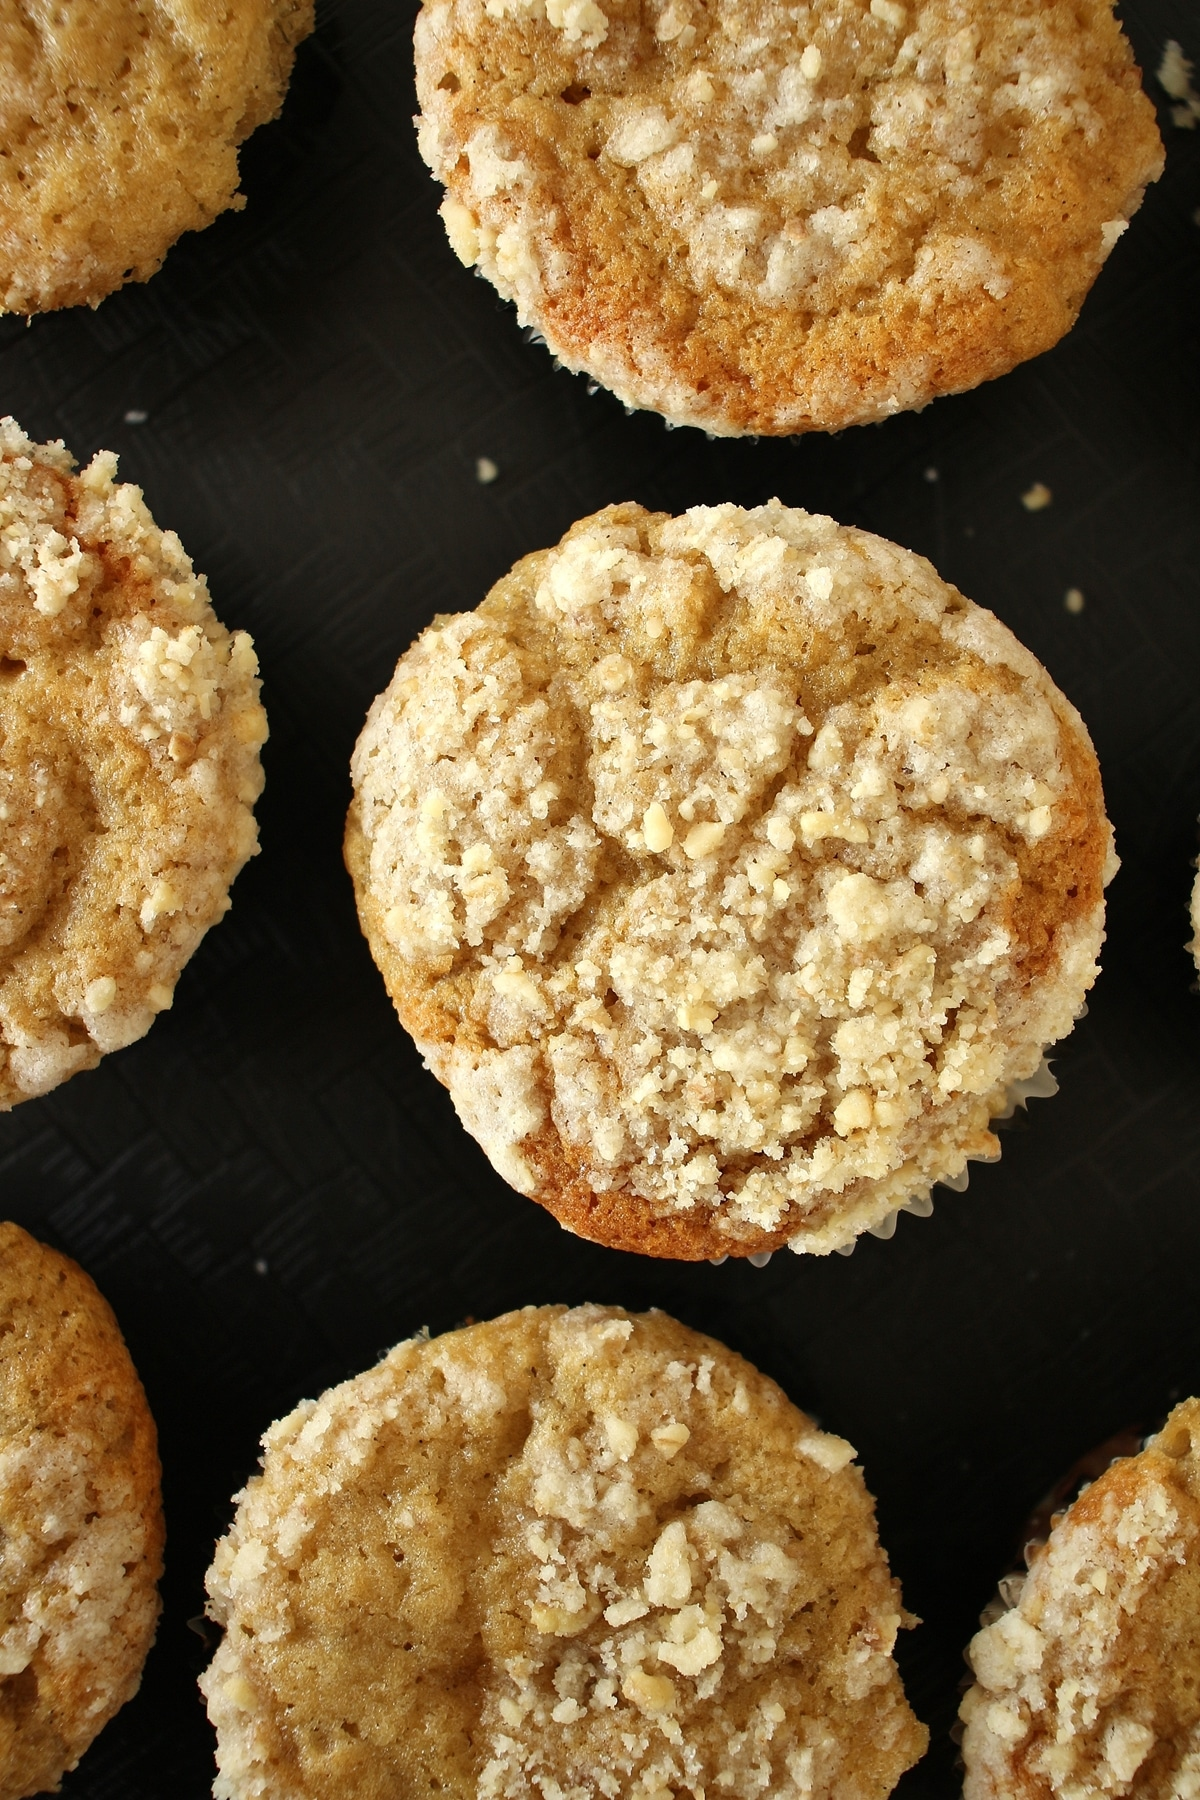 Bakery style banana muffins with streusel topping on a black tray